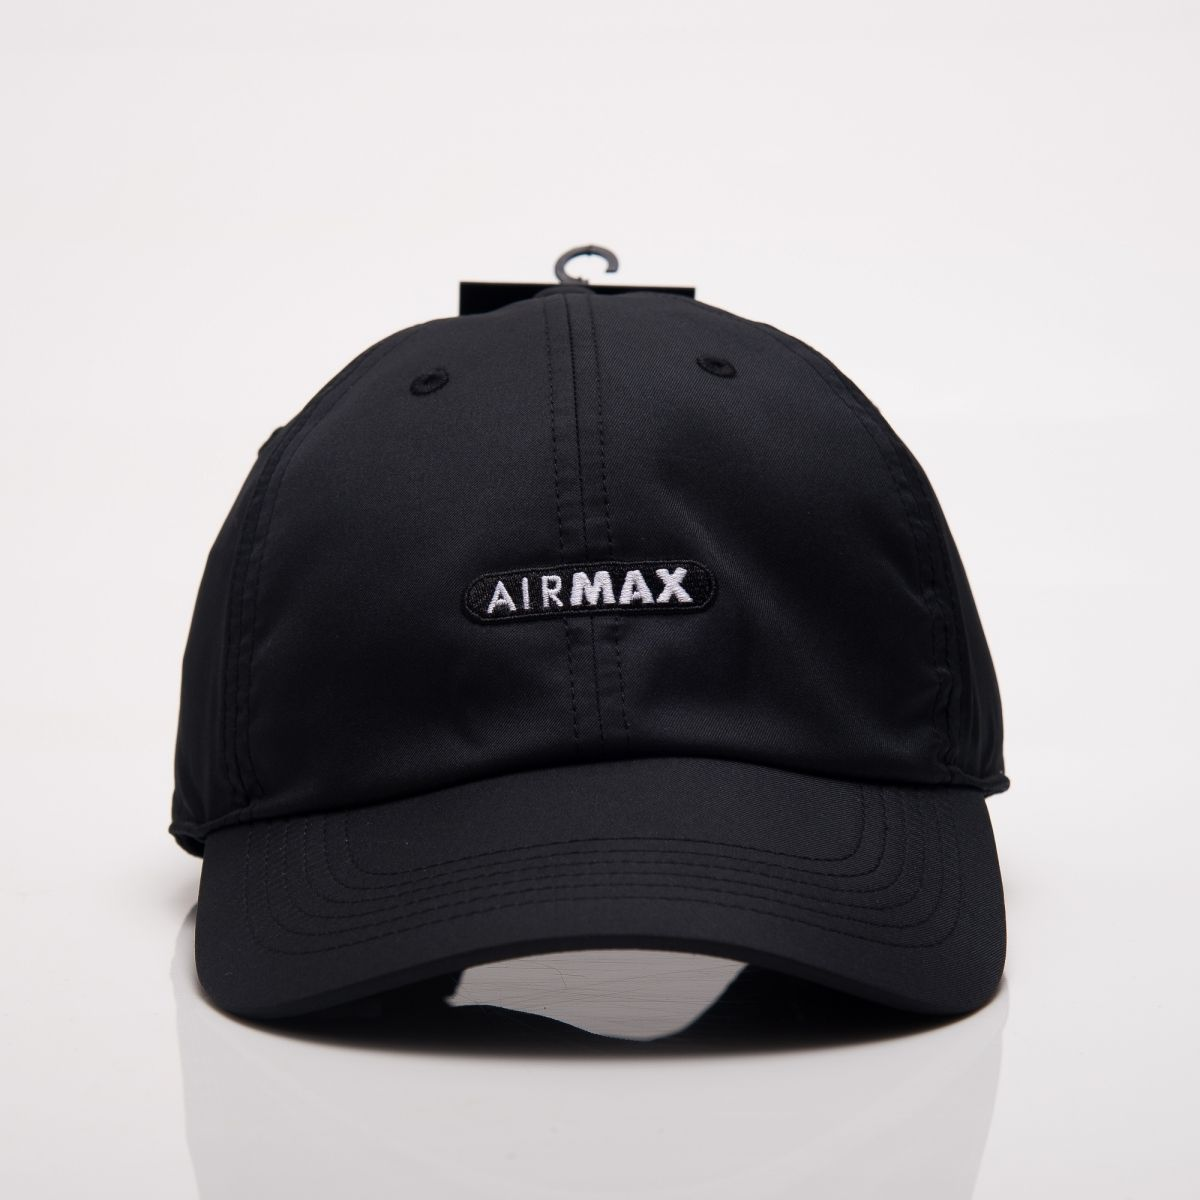 4a9e2a5357b Type Caps Nike Aerobill H86 Air Max Adjustable Hat